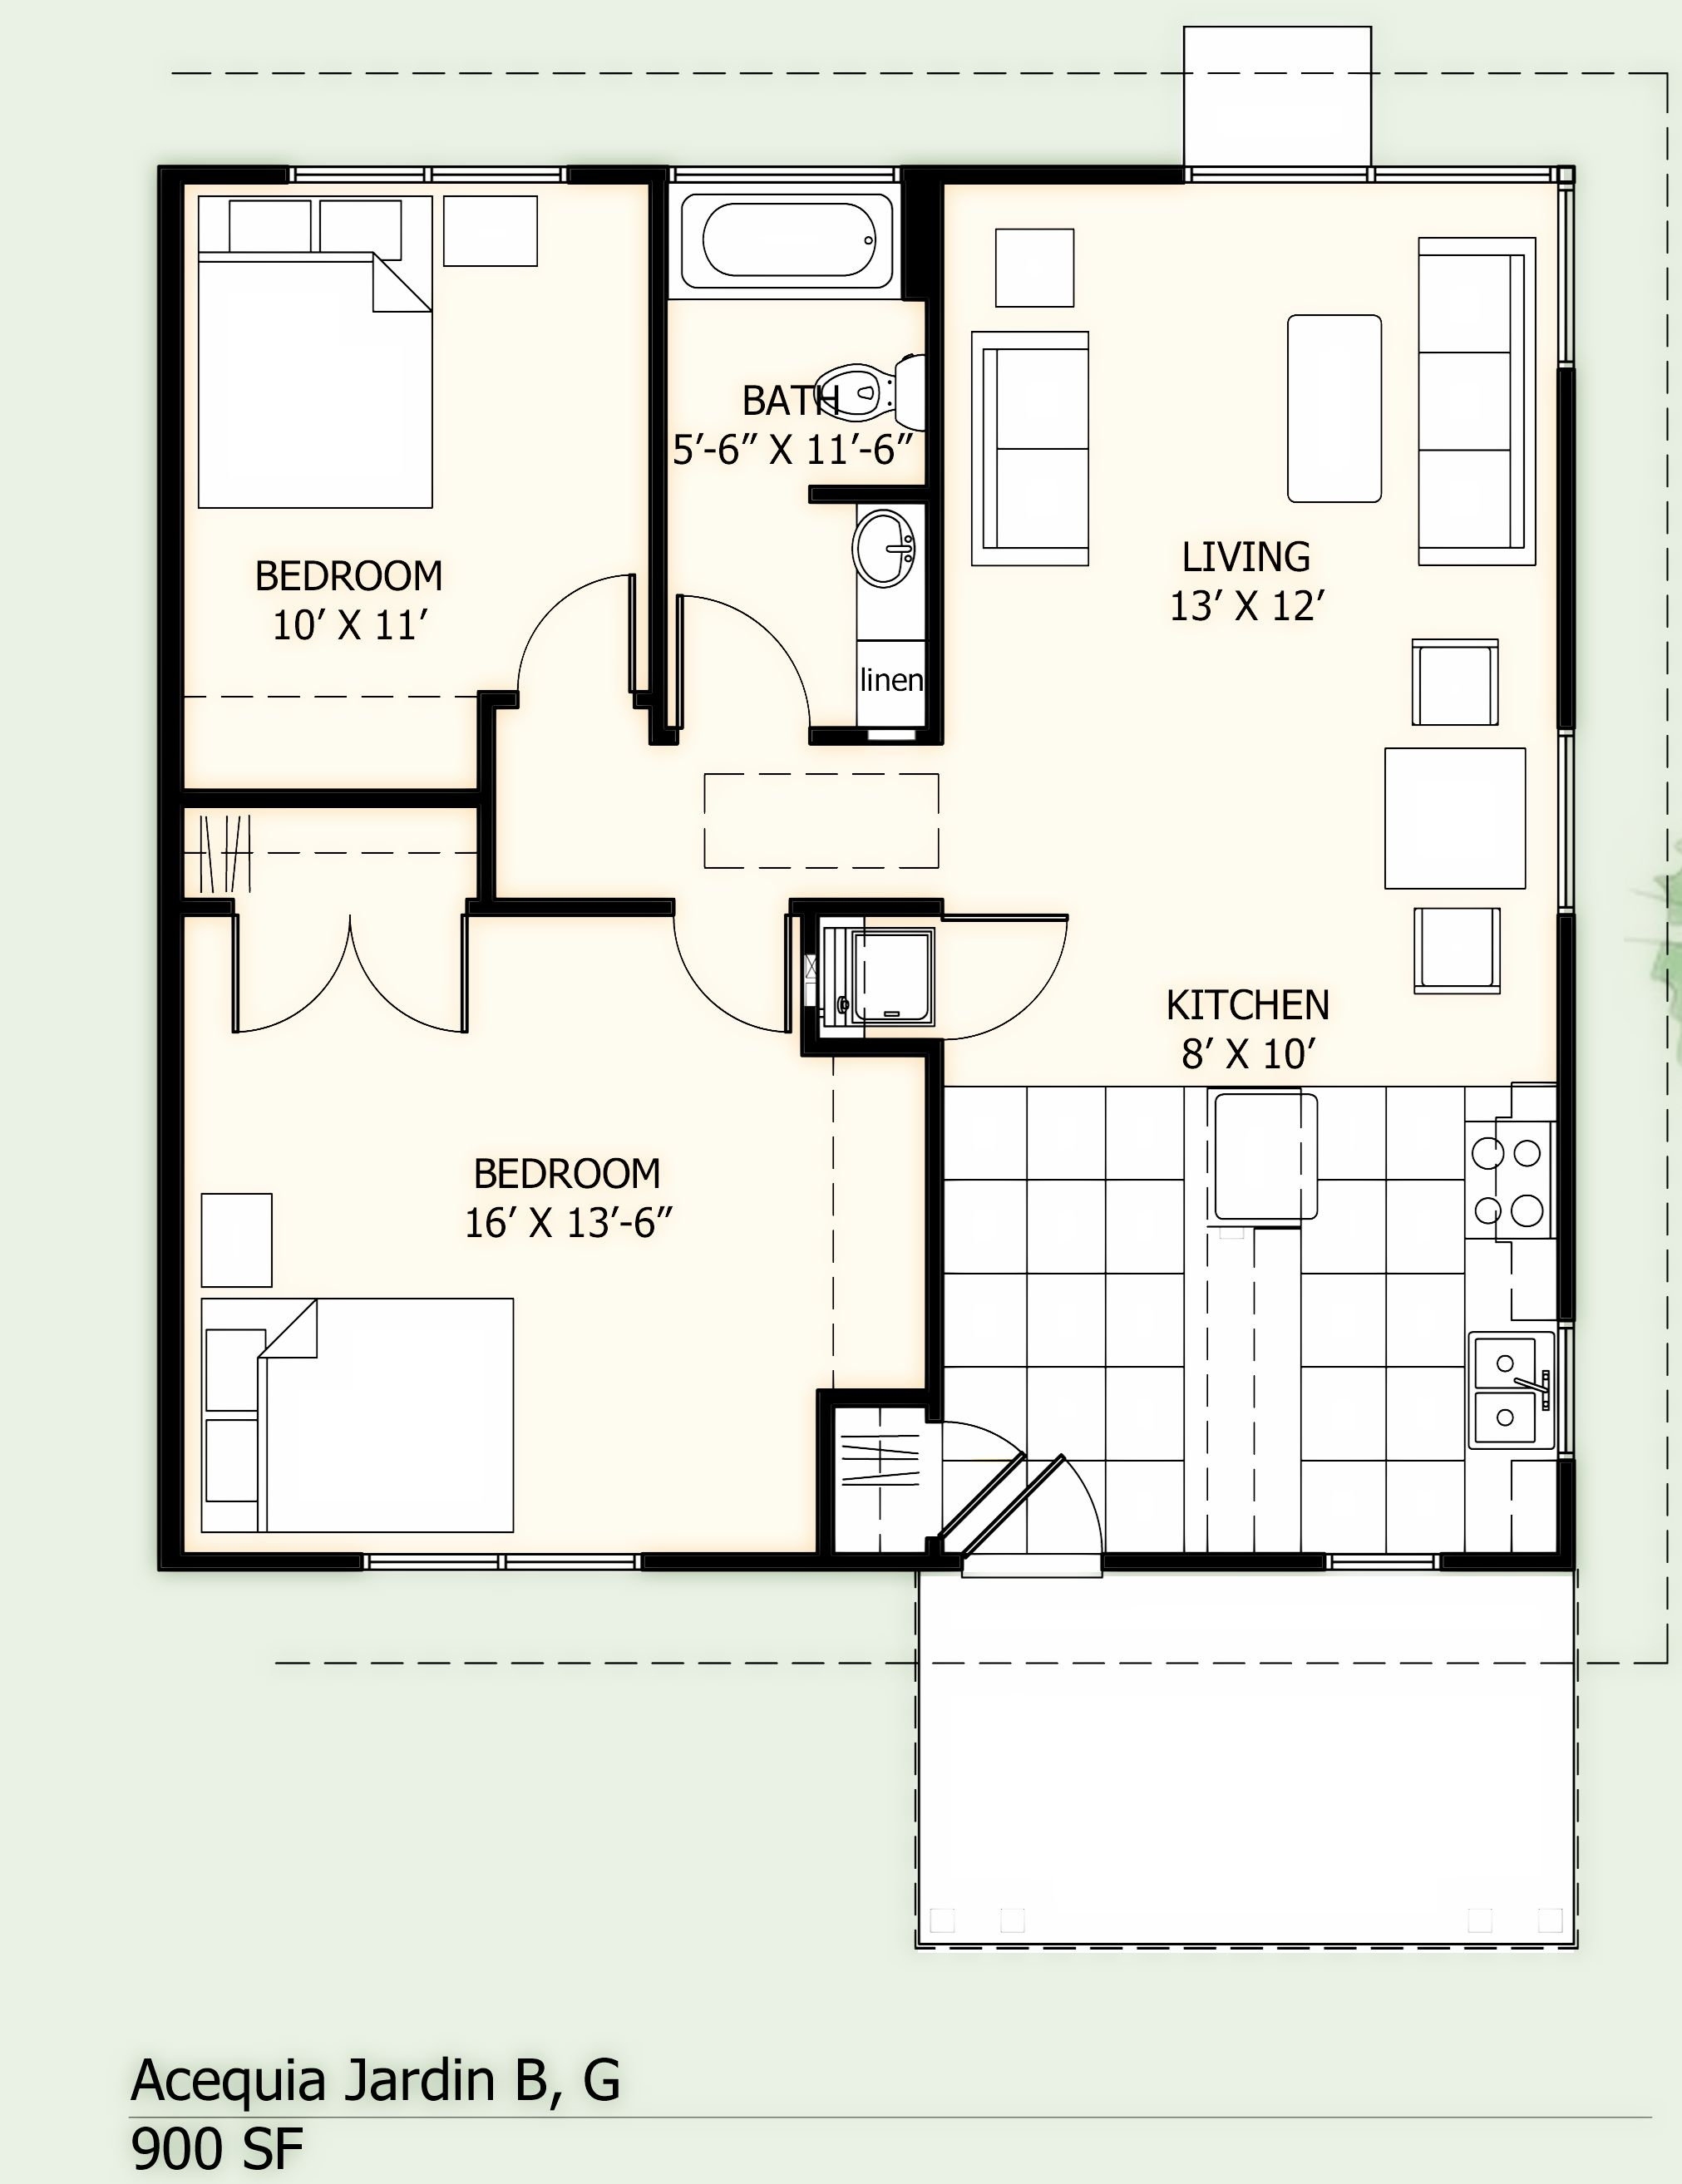 1 Bedroom 2 Bathroom House Plans Floorplan 900 900 Sq Ft 2 Bedroom 1 Bath Carport